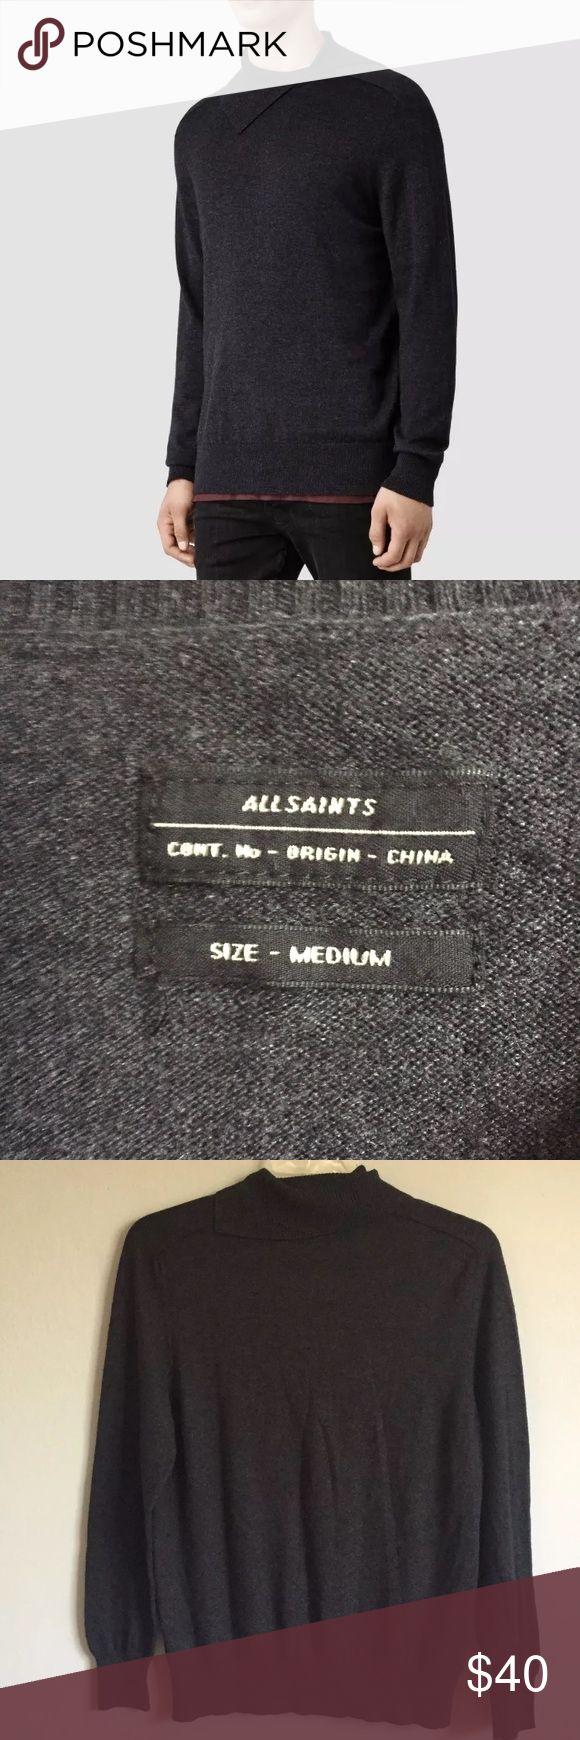 All Saints Medium sweater shirt long sleeve This listing is for a preowned top in excellent condition. Thanks for looking! All Saints Shirts Sweatshirts & Hoodies